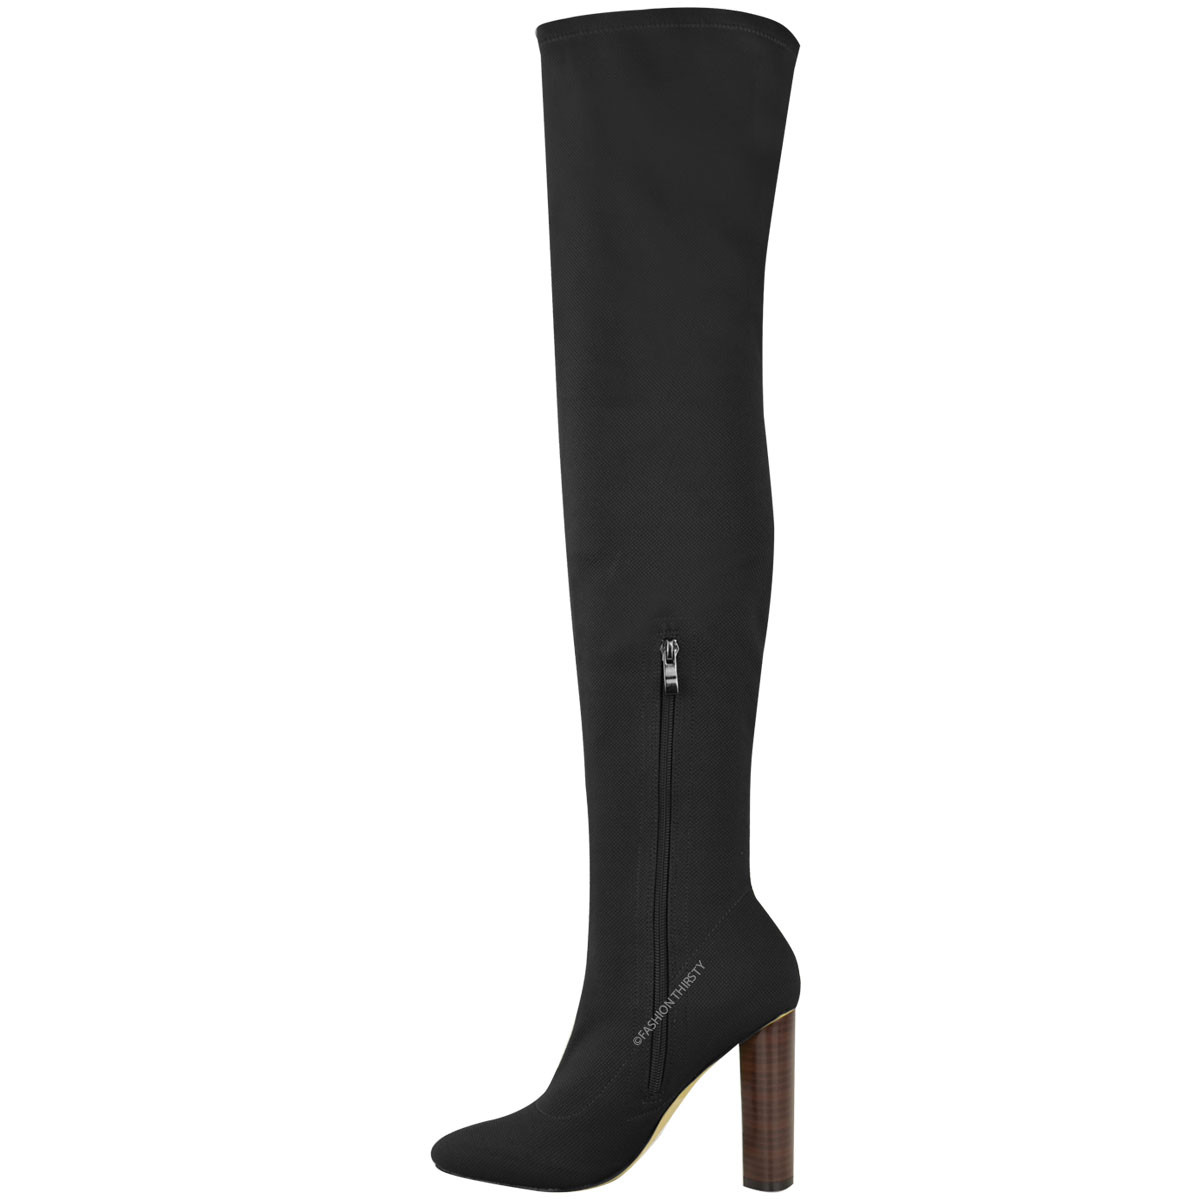 Knit Boots Awesome Womens La S Thigh High Stretch Knit Boots Over the Knee Of Luxury 48 Photos Knit Boots